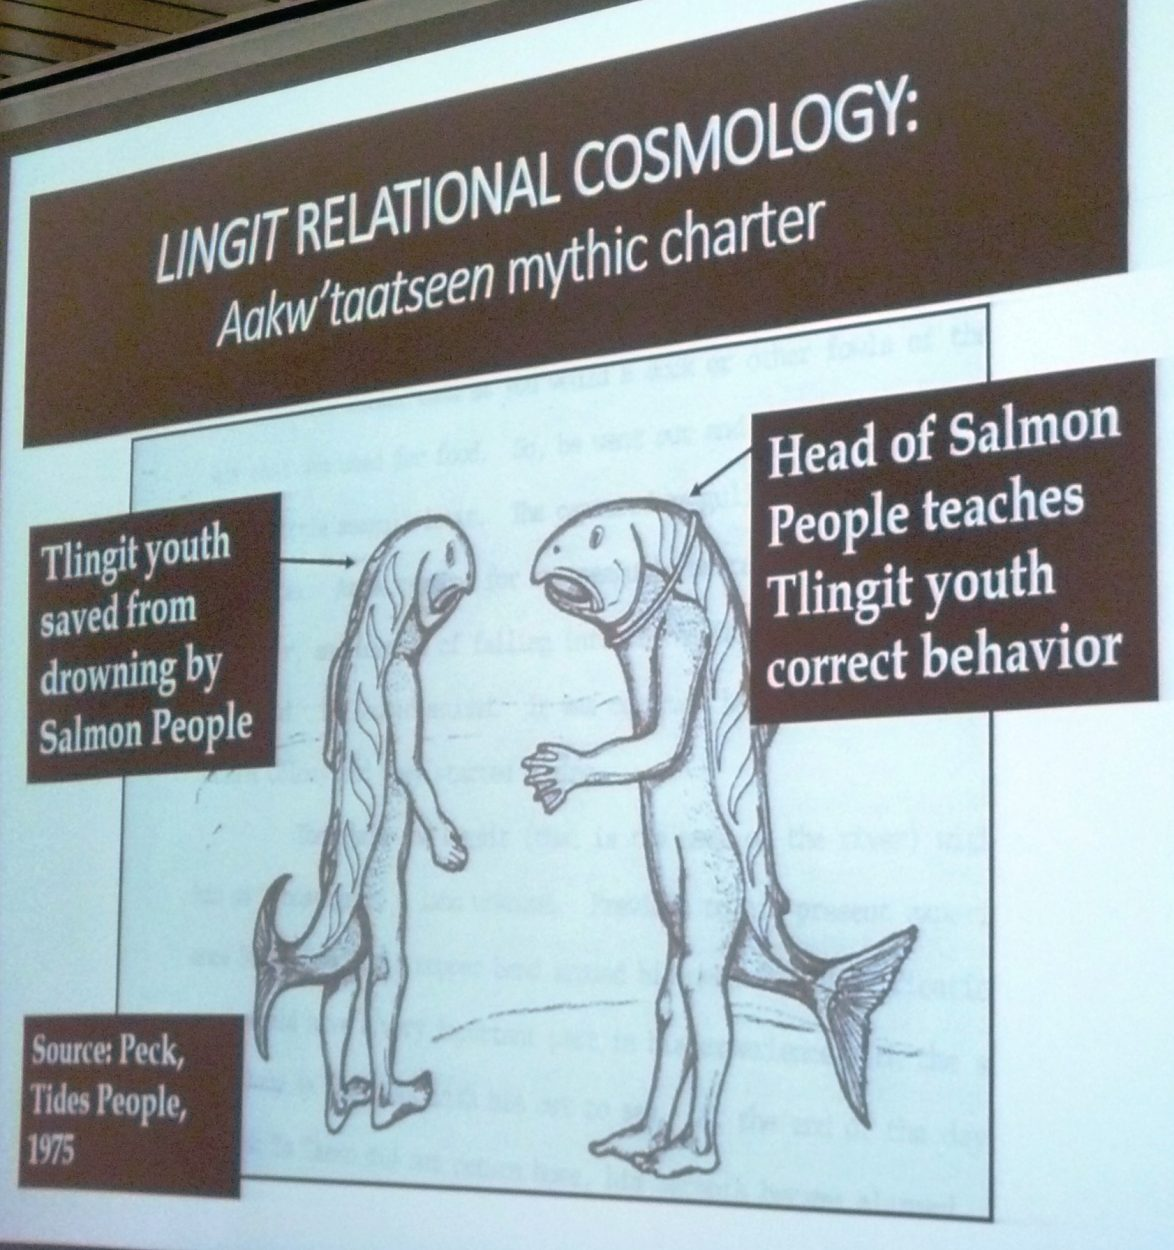 Anthropologist discusses Tlingit spirituality